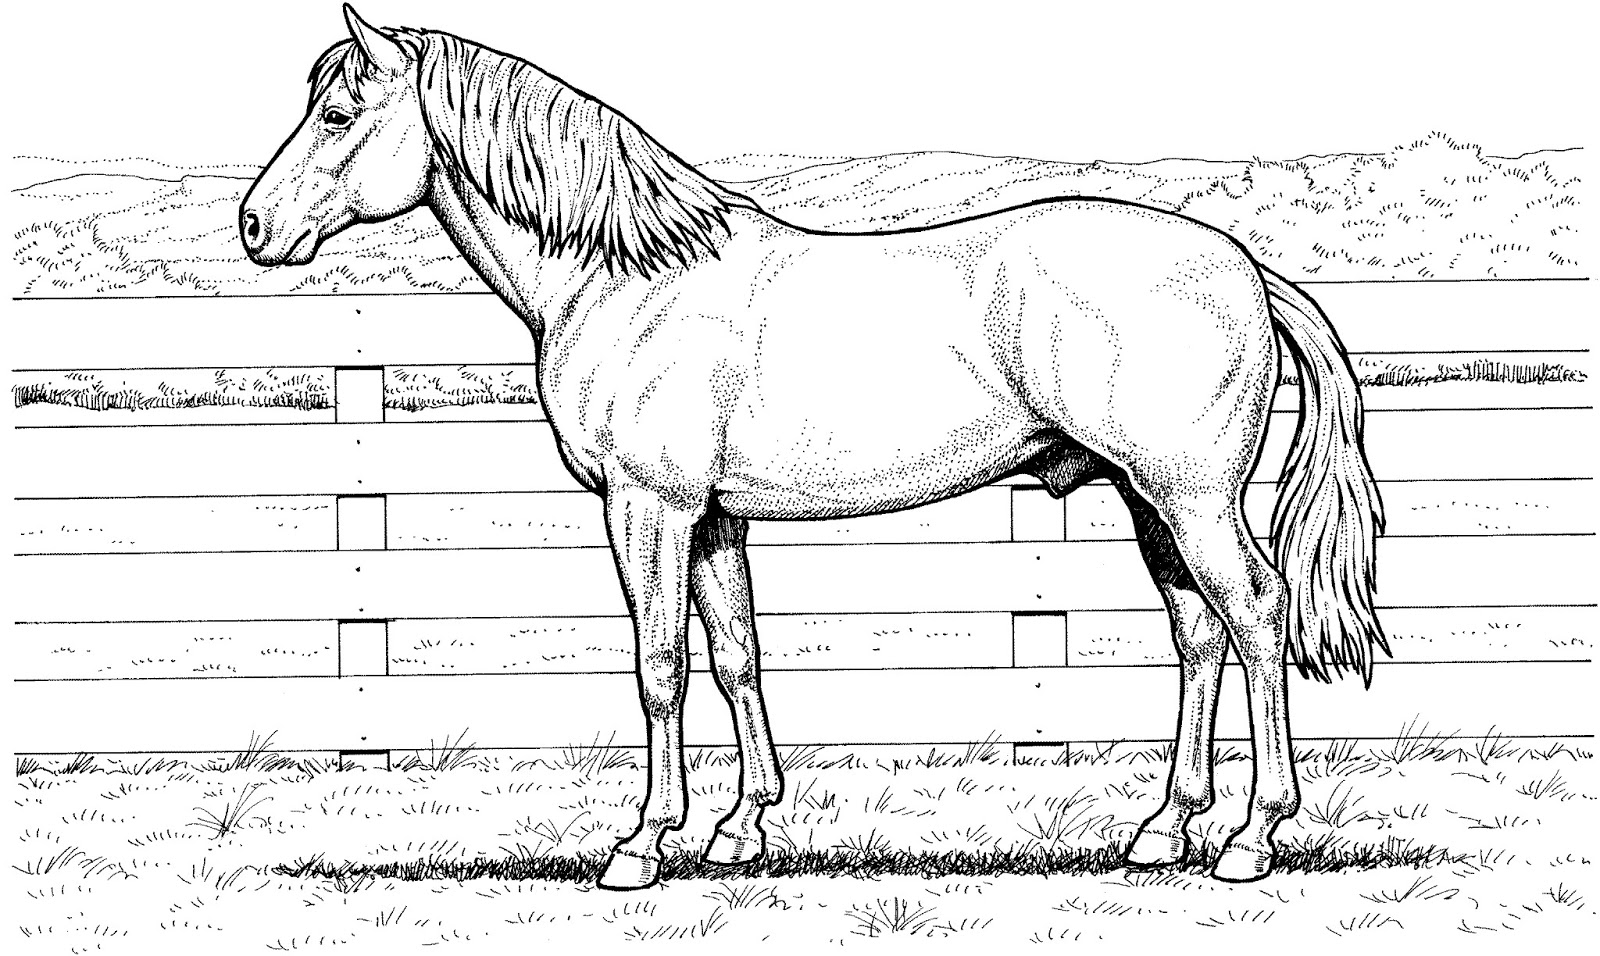 coloring images horse fun horse coloring pages for your kids printable coloring images horse